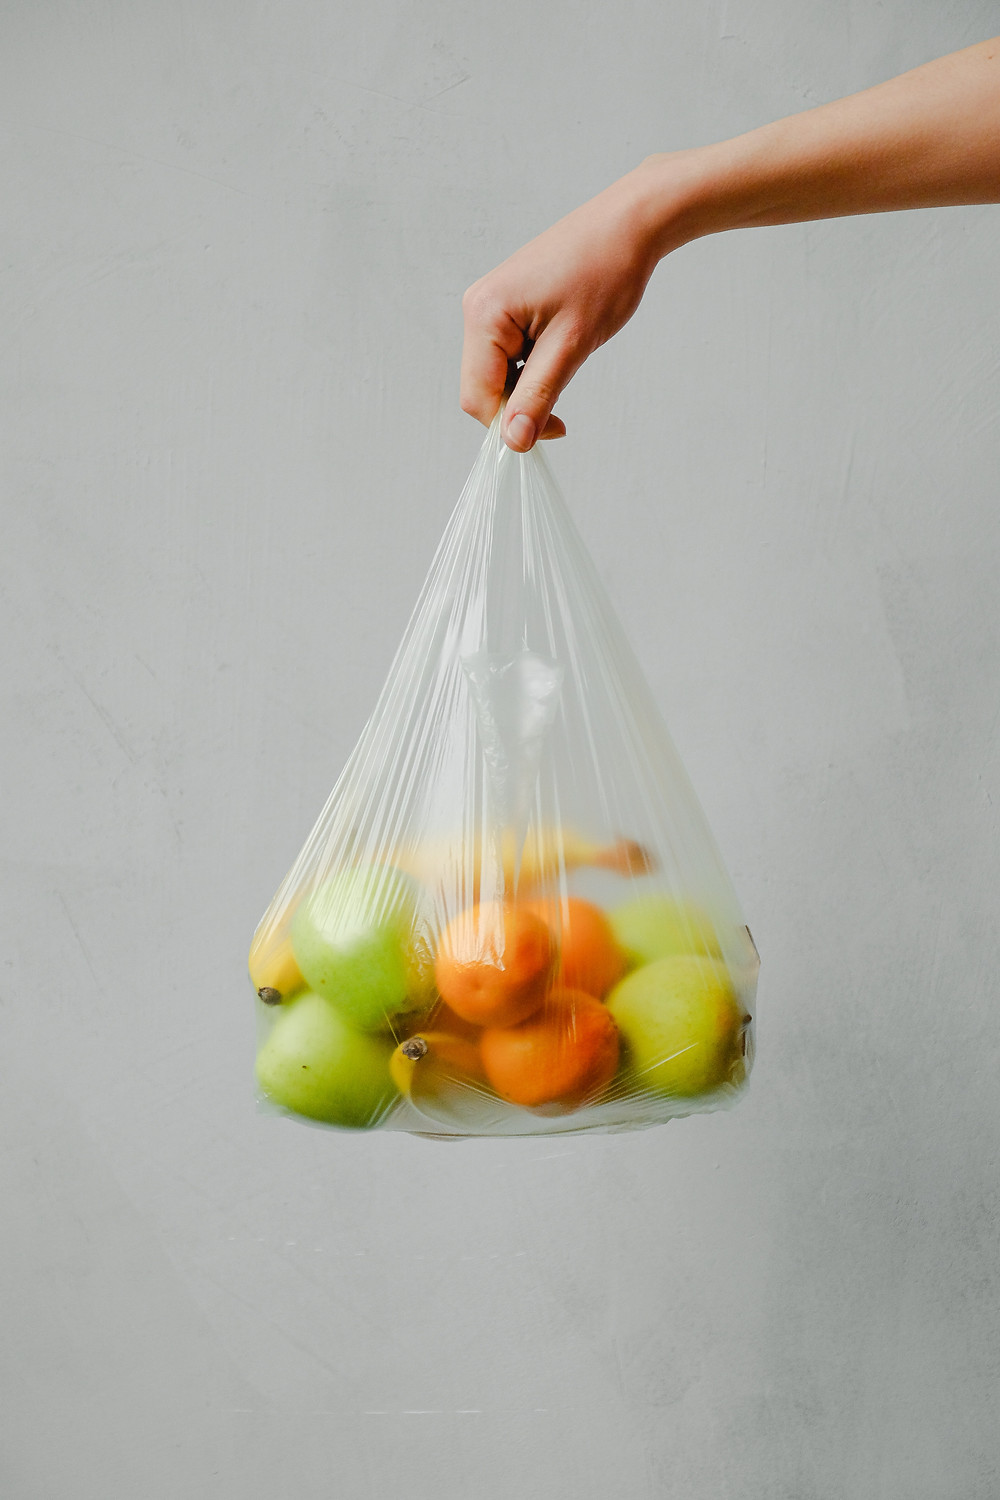 A hand holding a clear plastic bag filled with fruits (bananas, oranges and green apples)